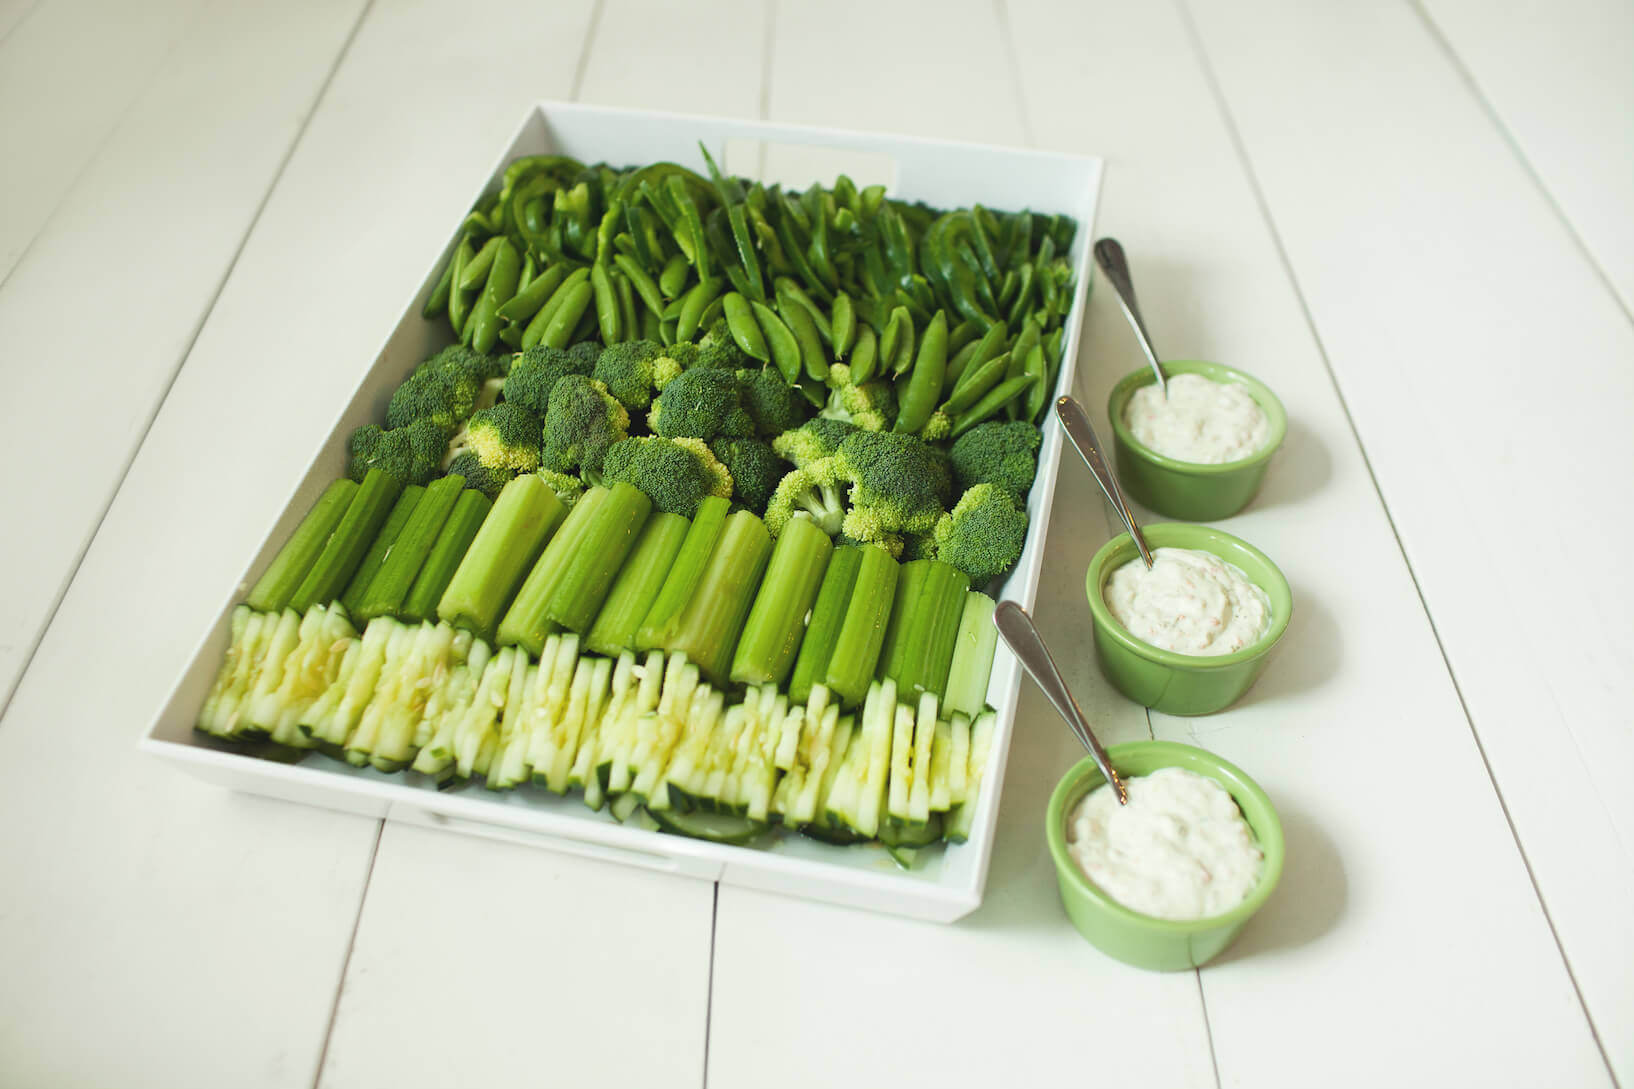 St. Patrick's Day Vegetable Tray